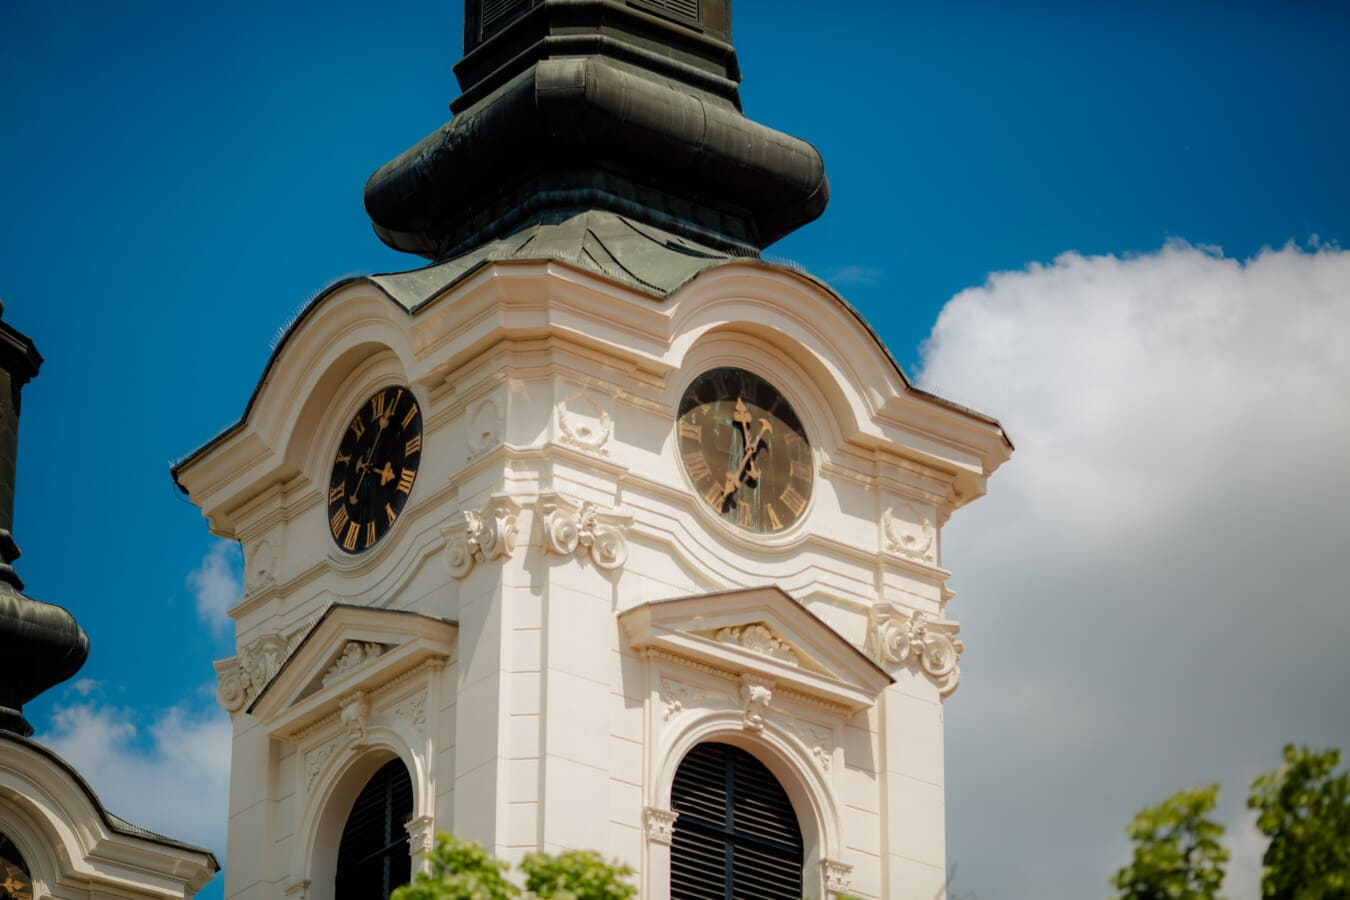 church, church tower, analog clock, architectural style, orthodox, baroque, building, architecture, religion, cathedral